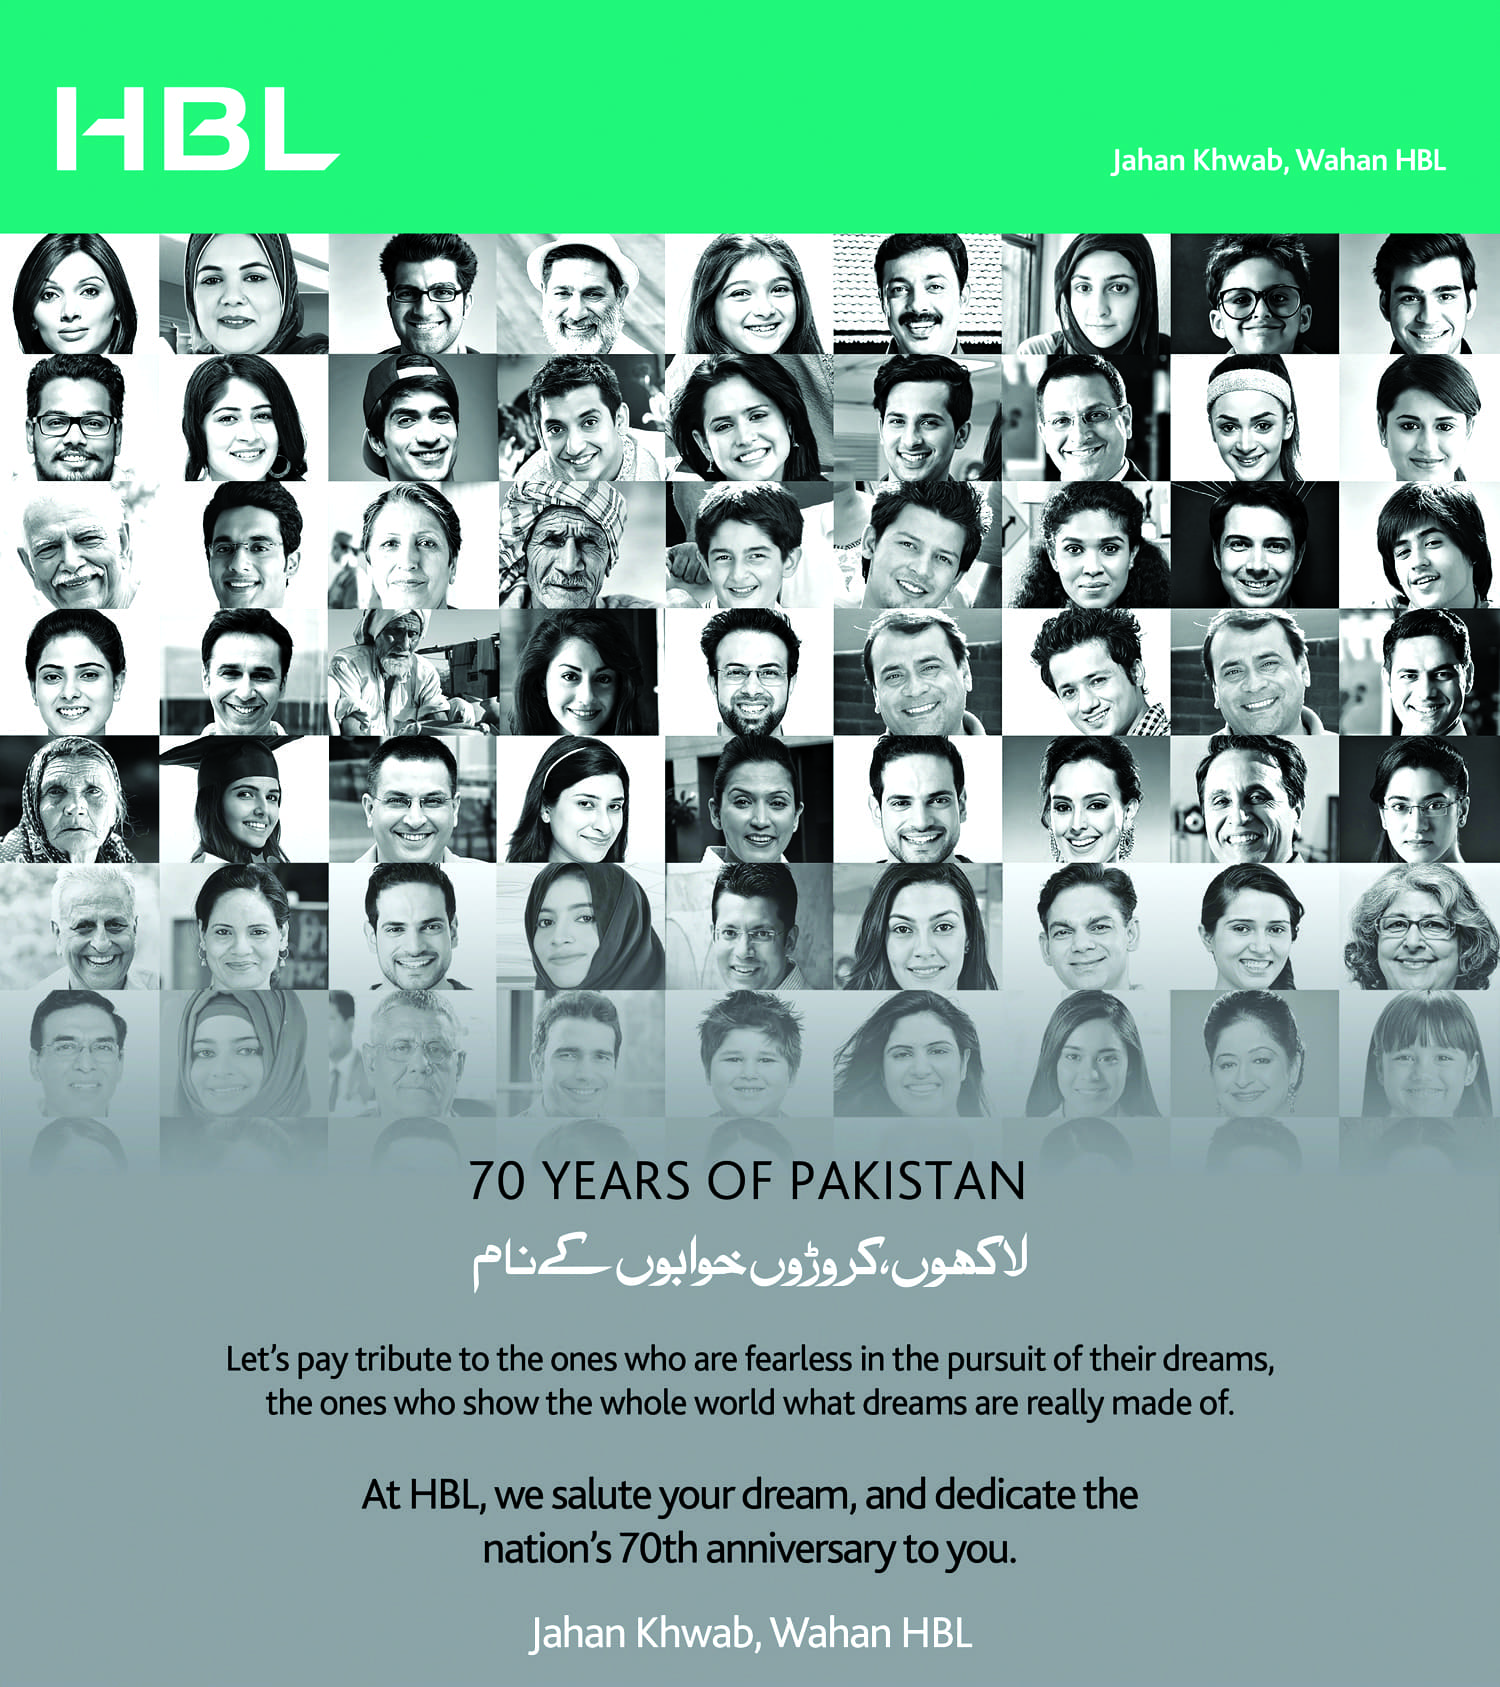 HBL's ad campaign from 2017